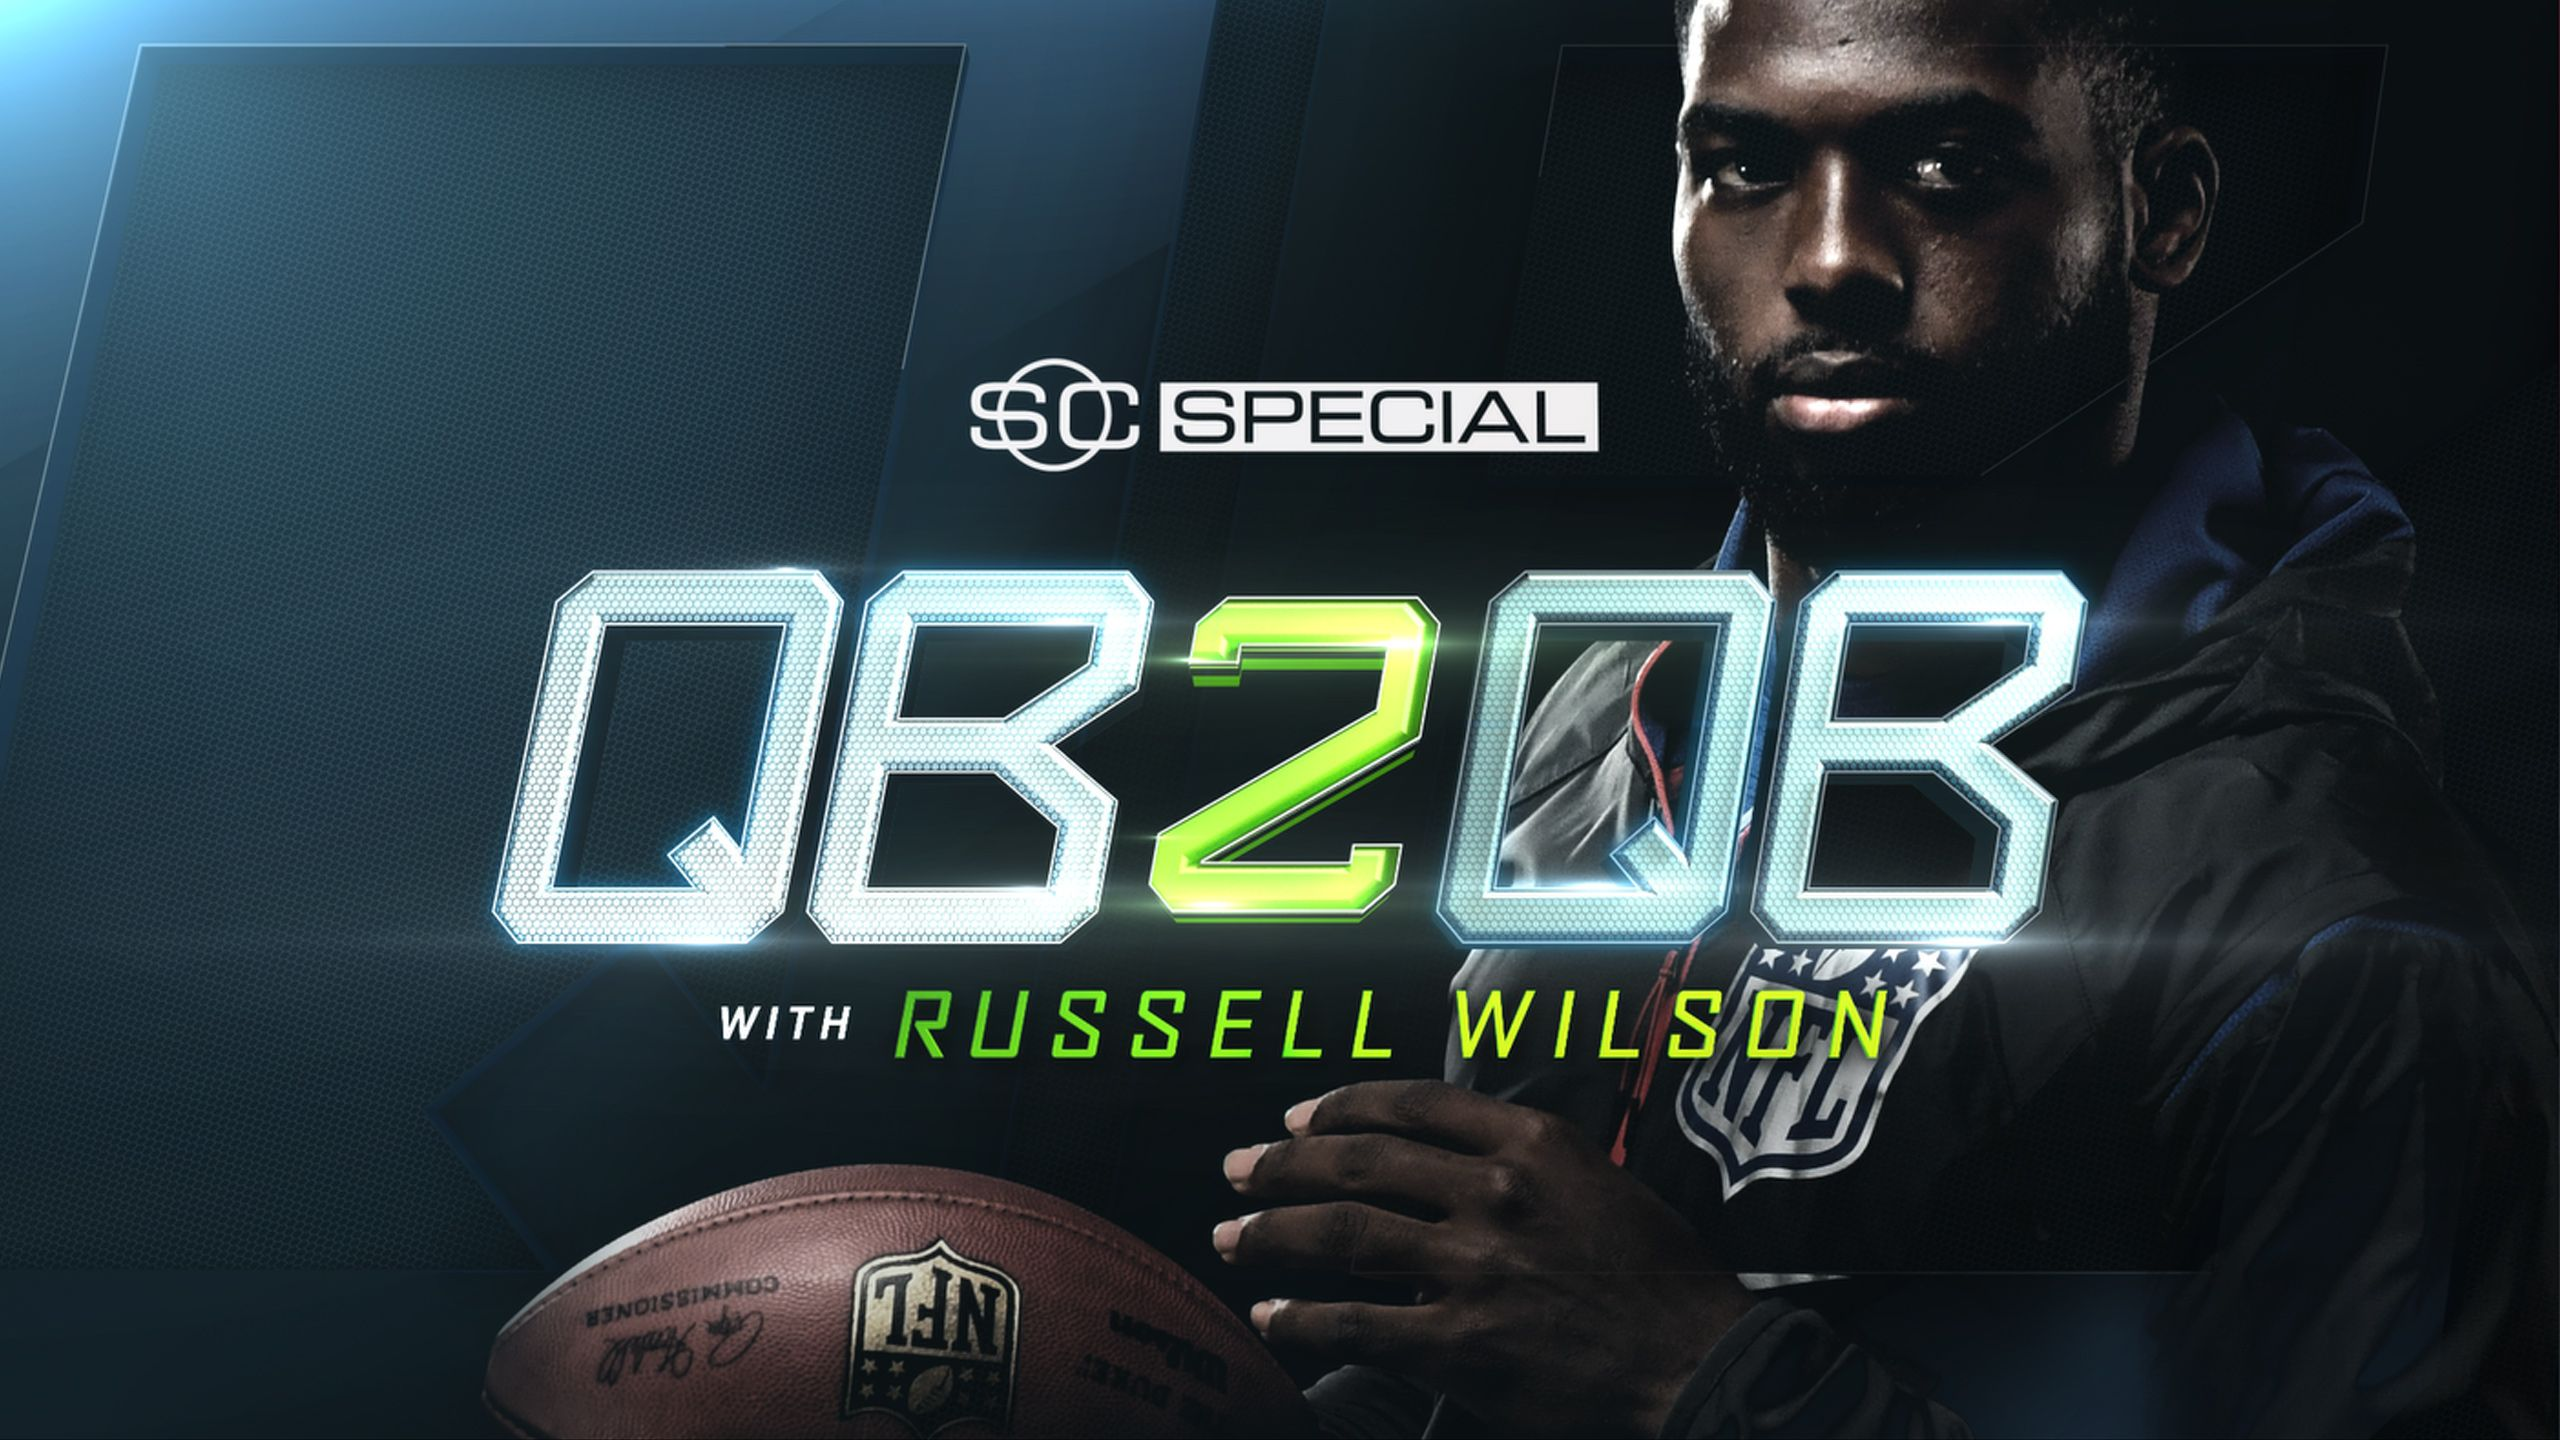 SportsCenter Special presented by Maui Jim Sunglasses: QB2QB with Russell Wilson and J.T. Barrett